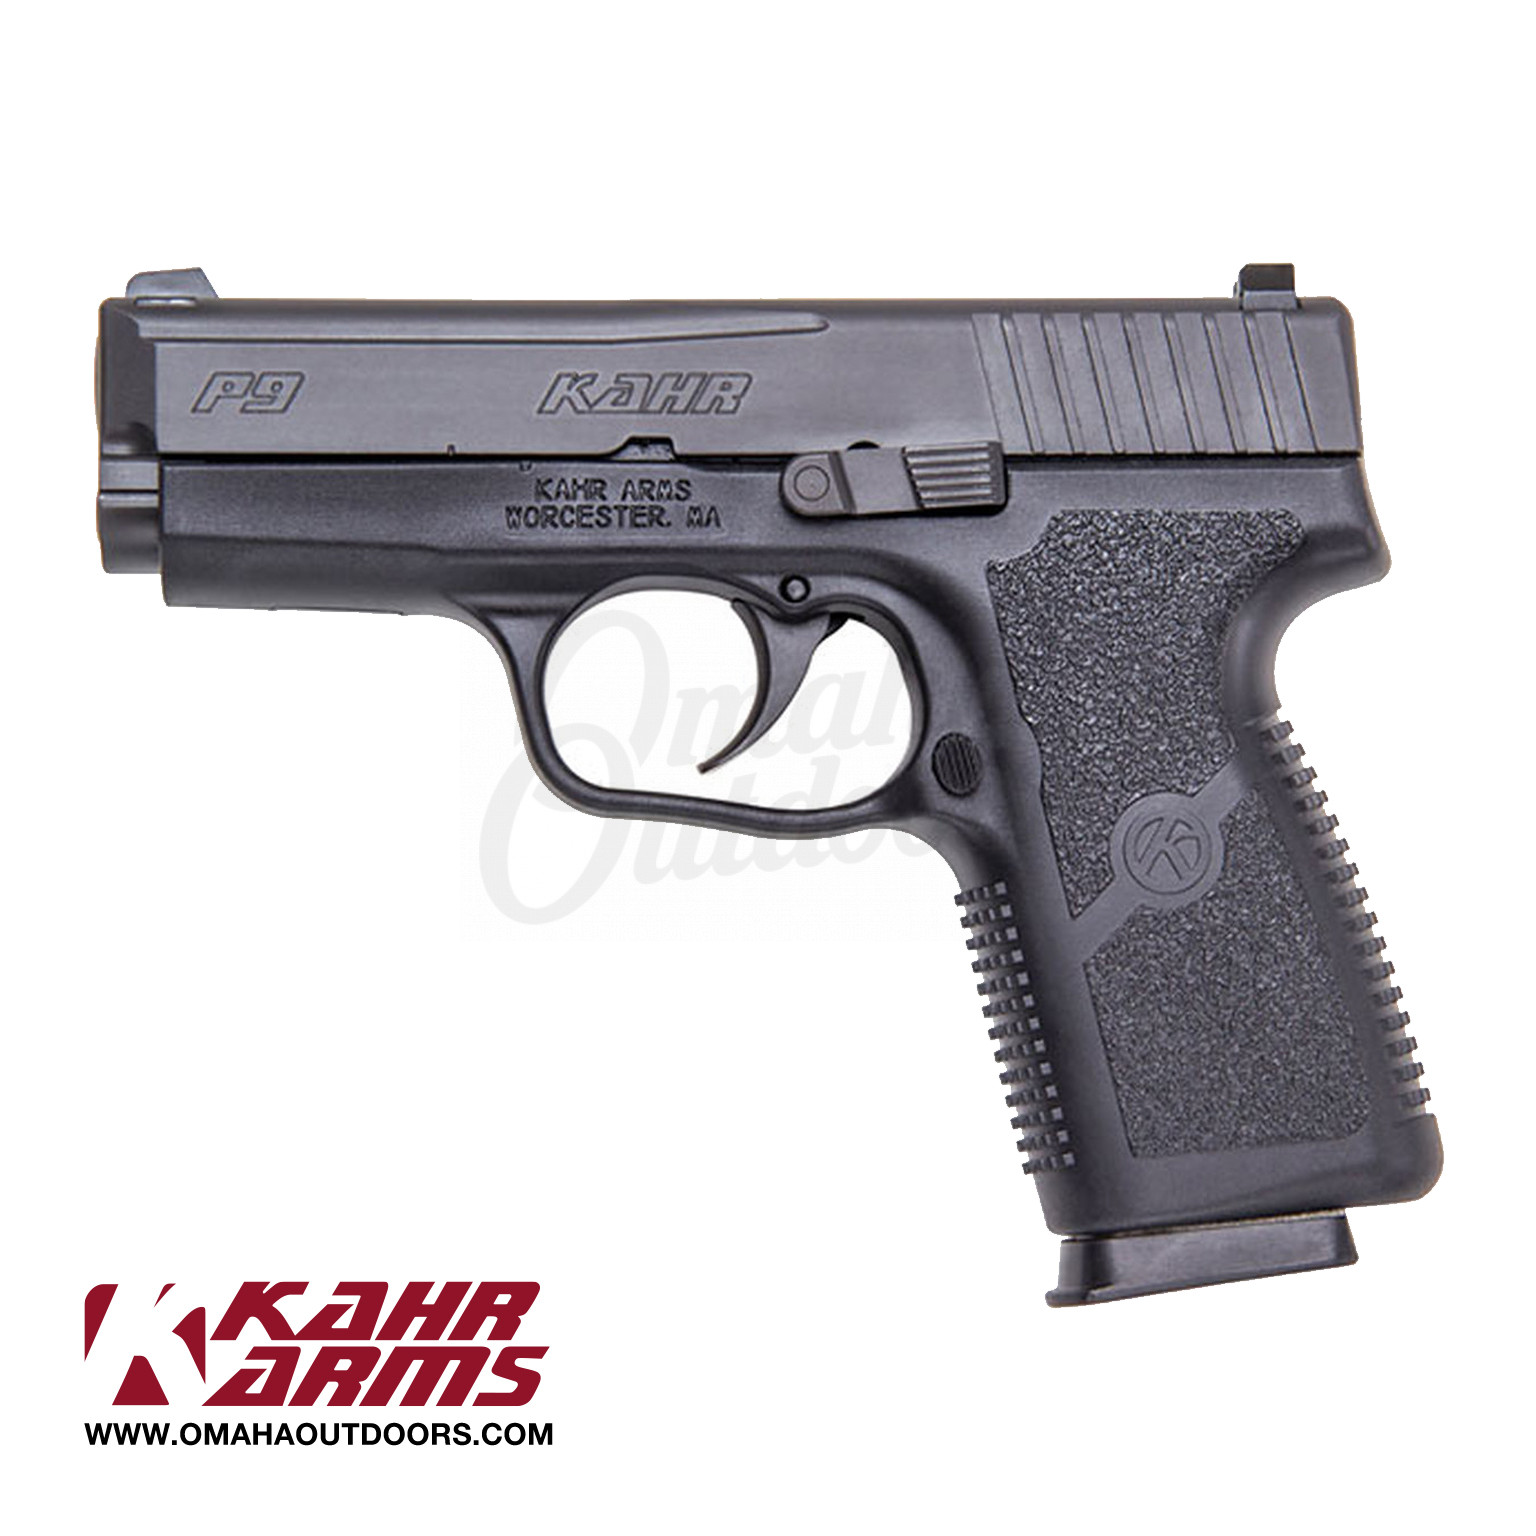 Kahr Arms P9 Pistol Night Sights 9mm 7 RD CA Compliant KP9094NA